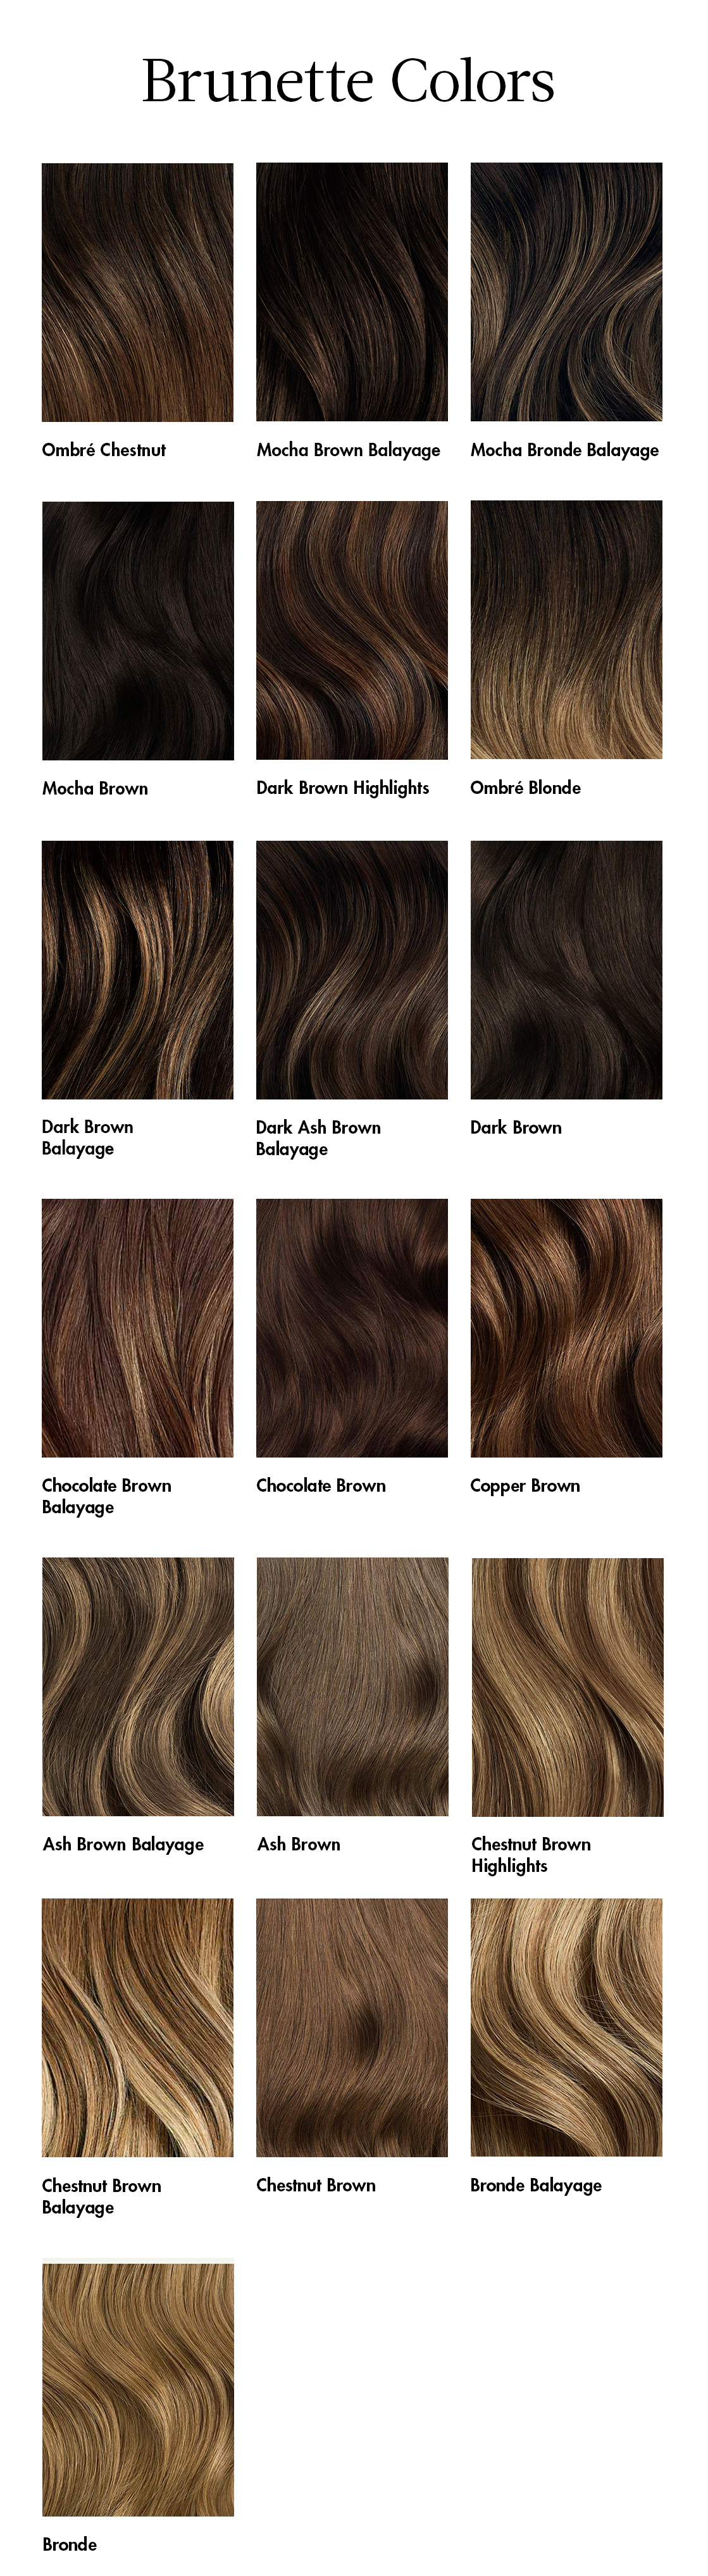 How Do I Choose The Right Color Of Brown Extensions Luxy Hair Support,Child Bedroom Furniture Design Ideas